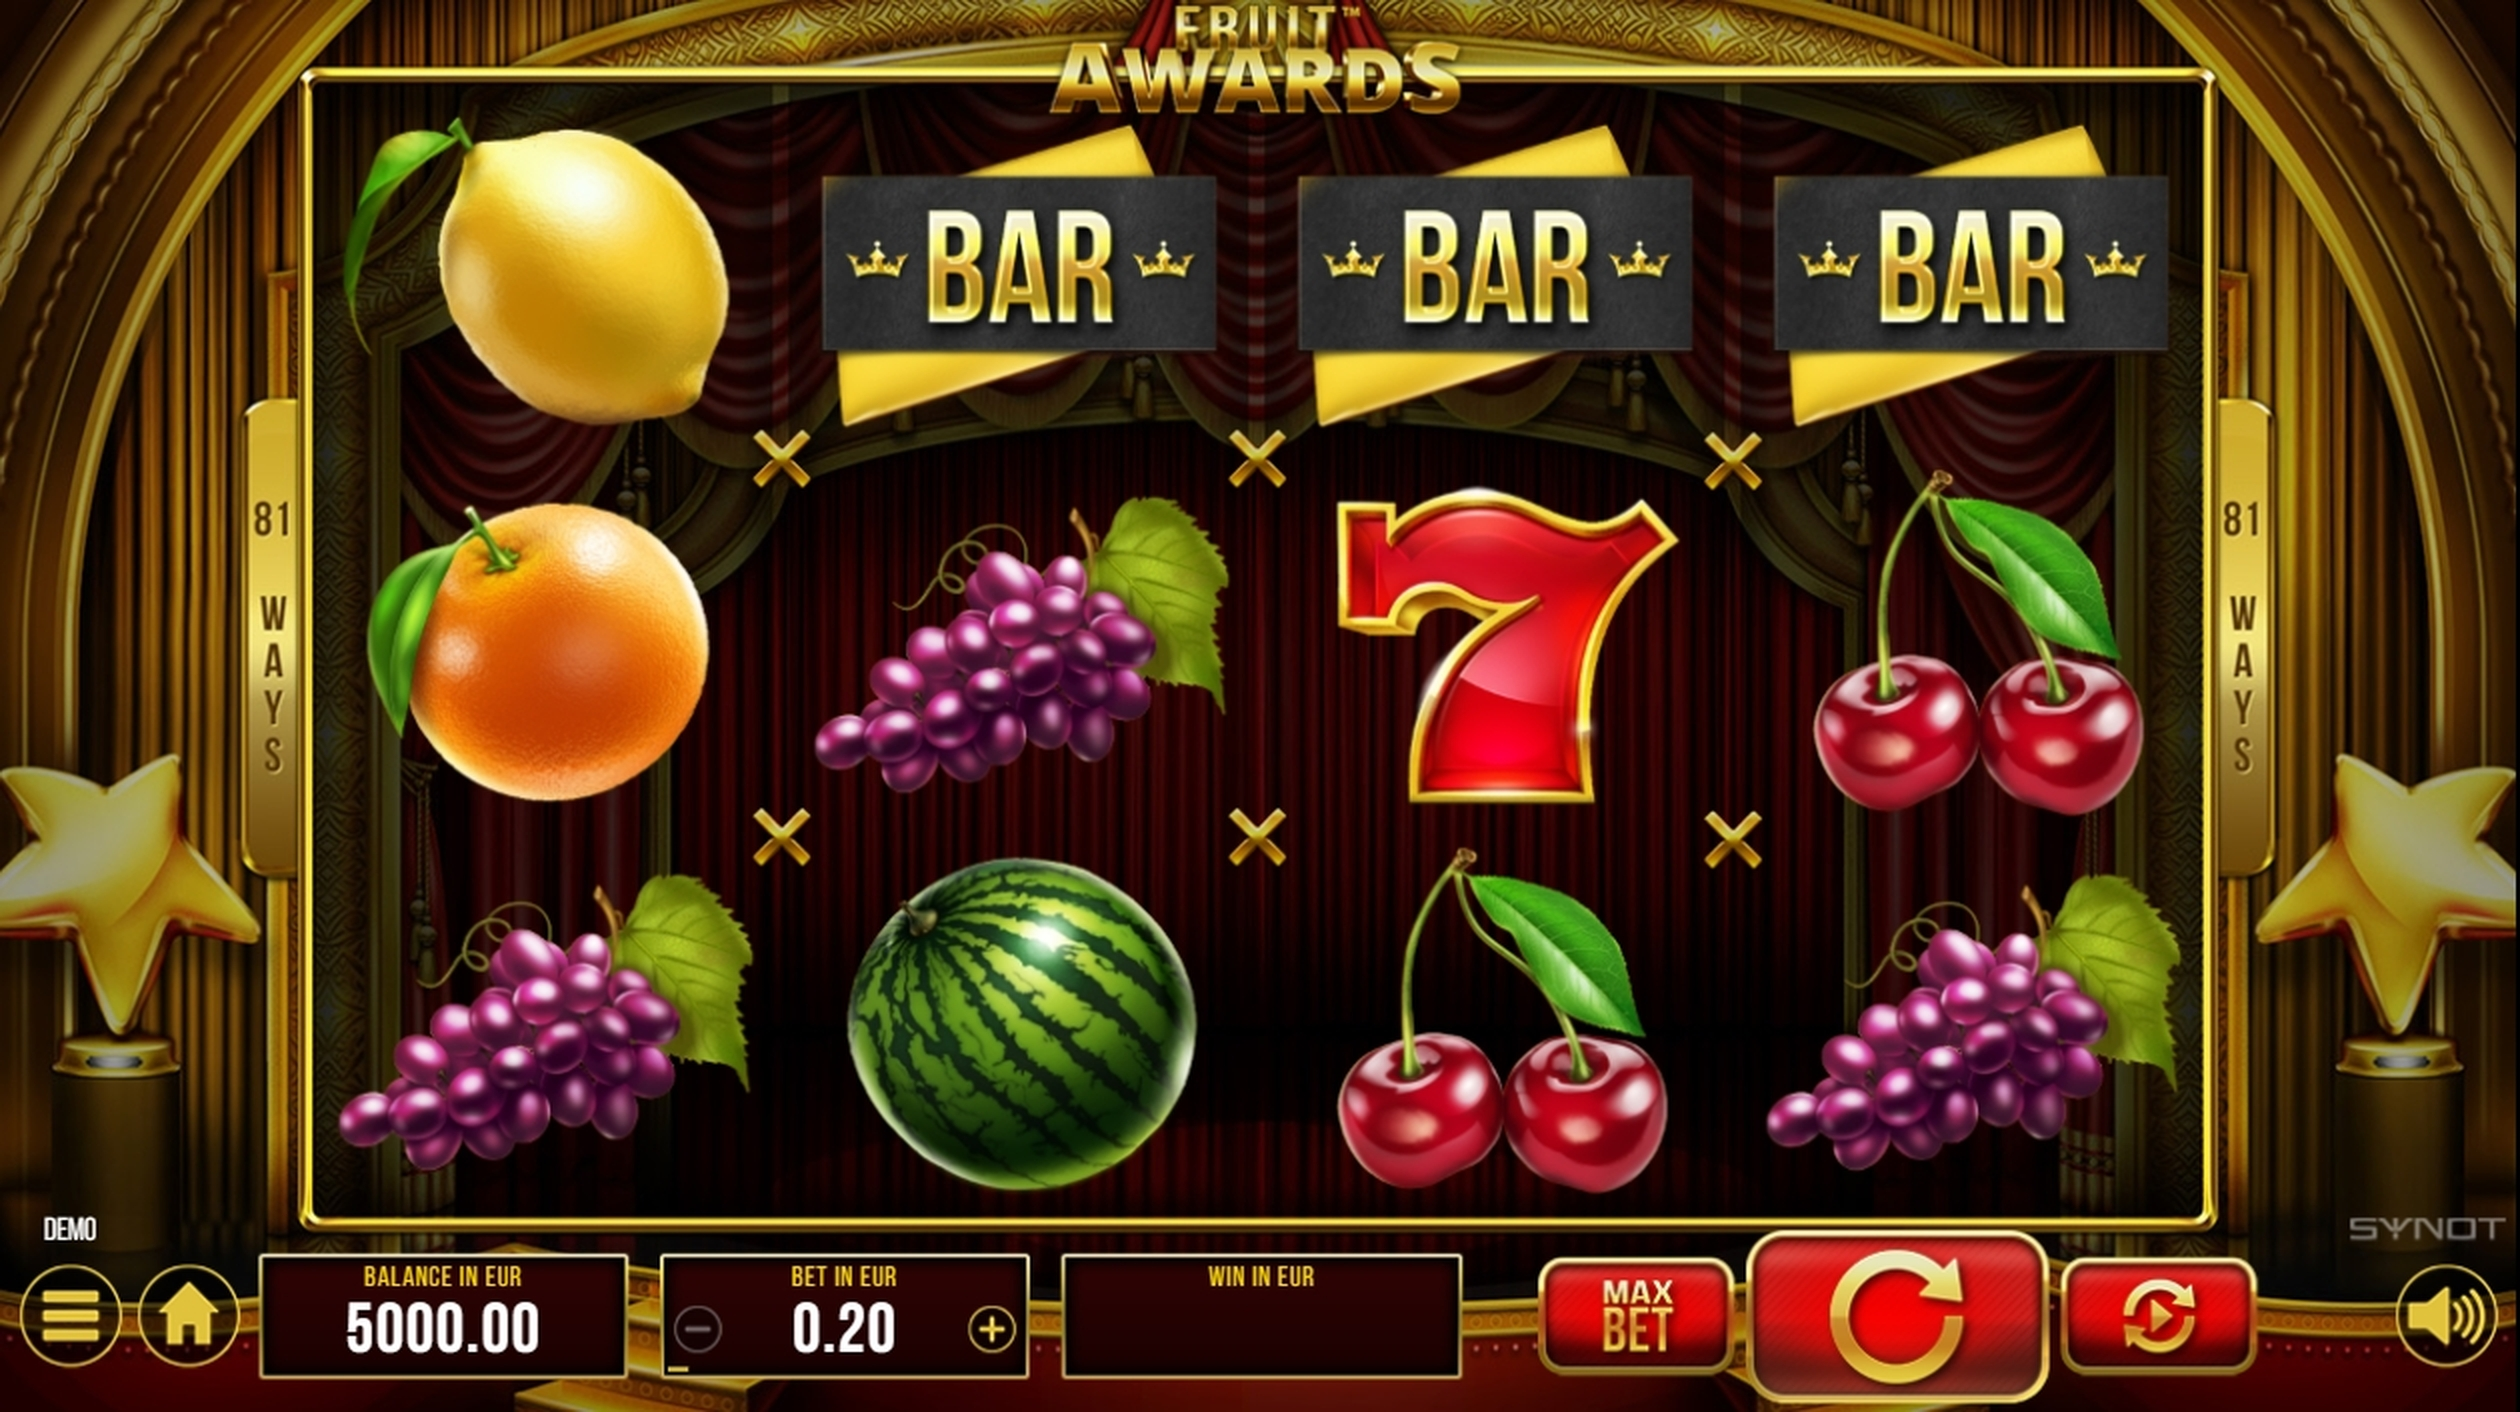 Reels in Fruit Awards Slot Game by Synot Games